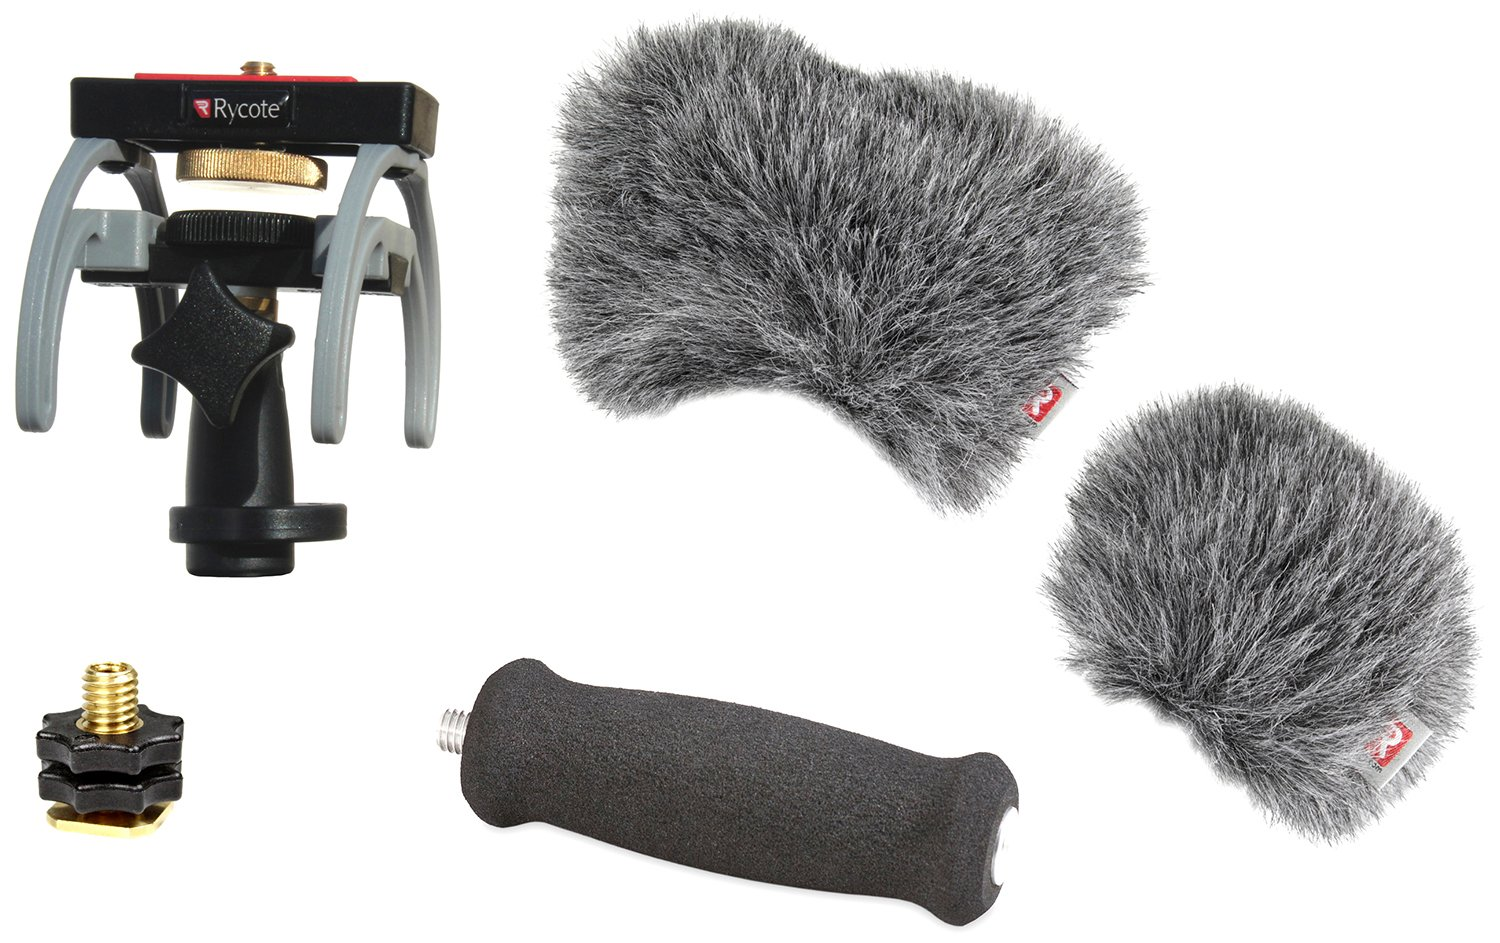 Rycote Portable Recorder Audio Kit for Zoom H6 Digital Recorder, Includes Suspension Mount, Mini Windjammer, Extension Handle, Swivel Adapter 046023